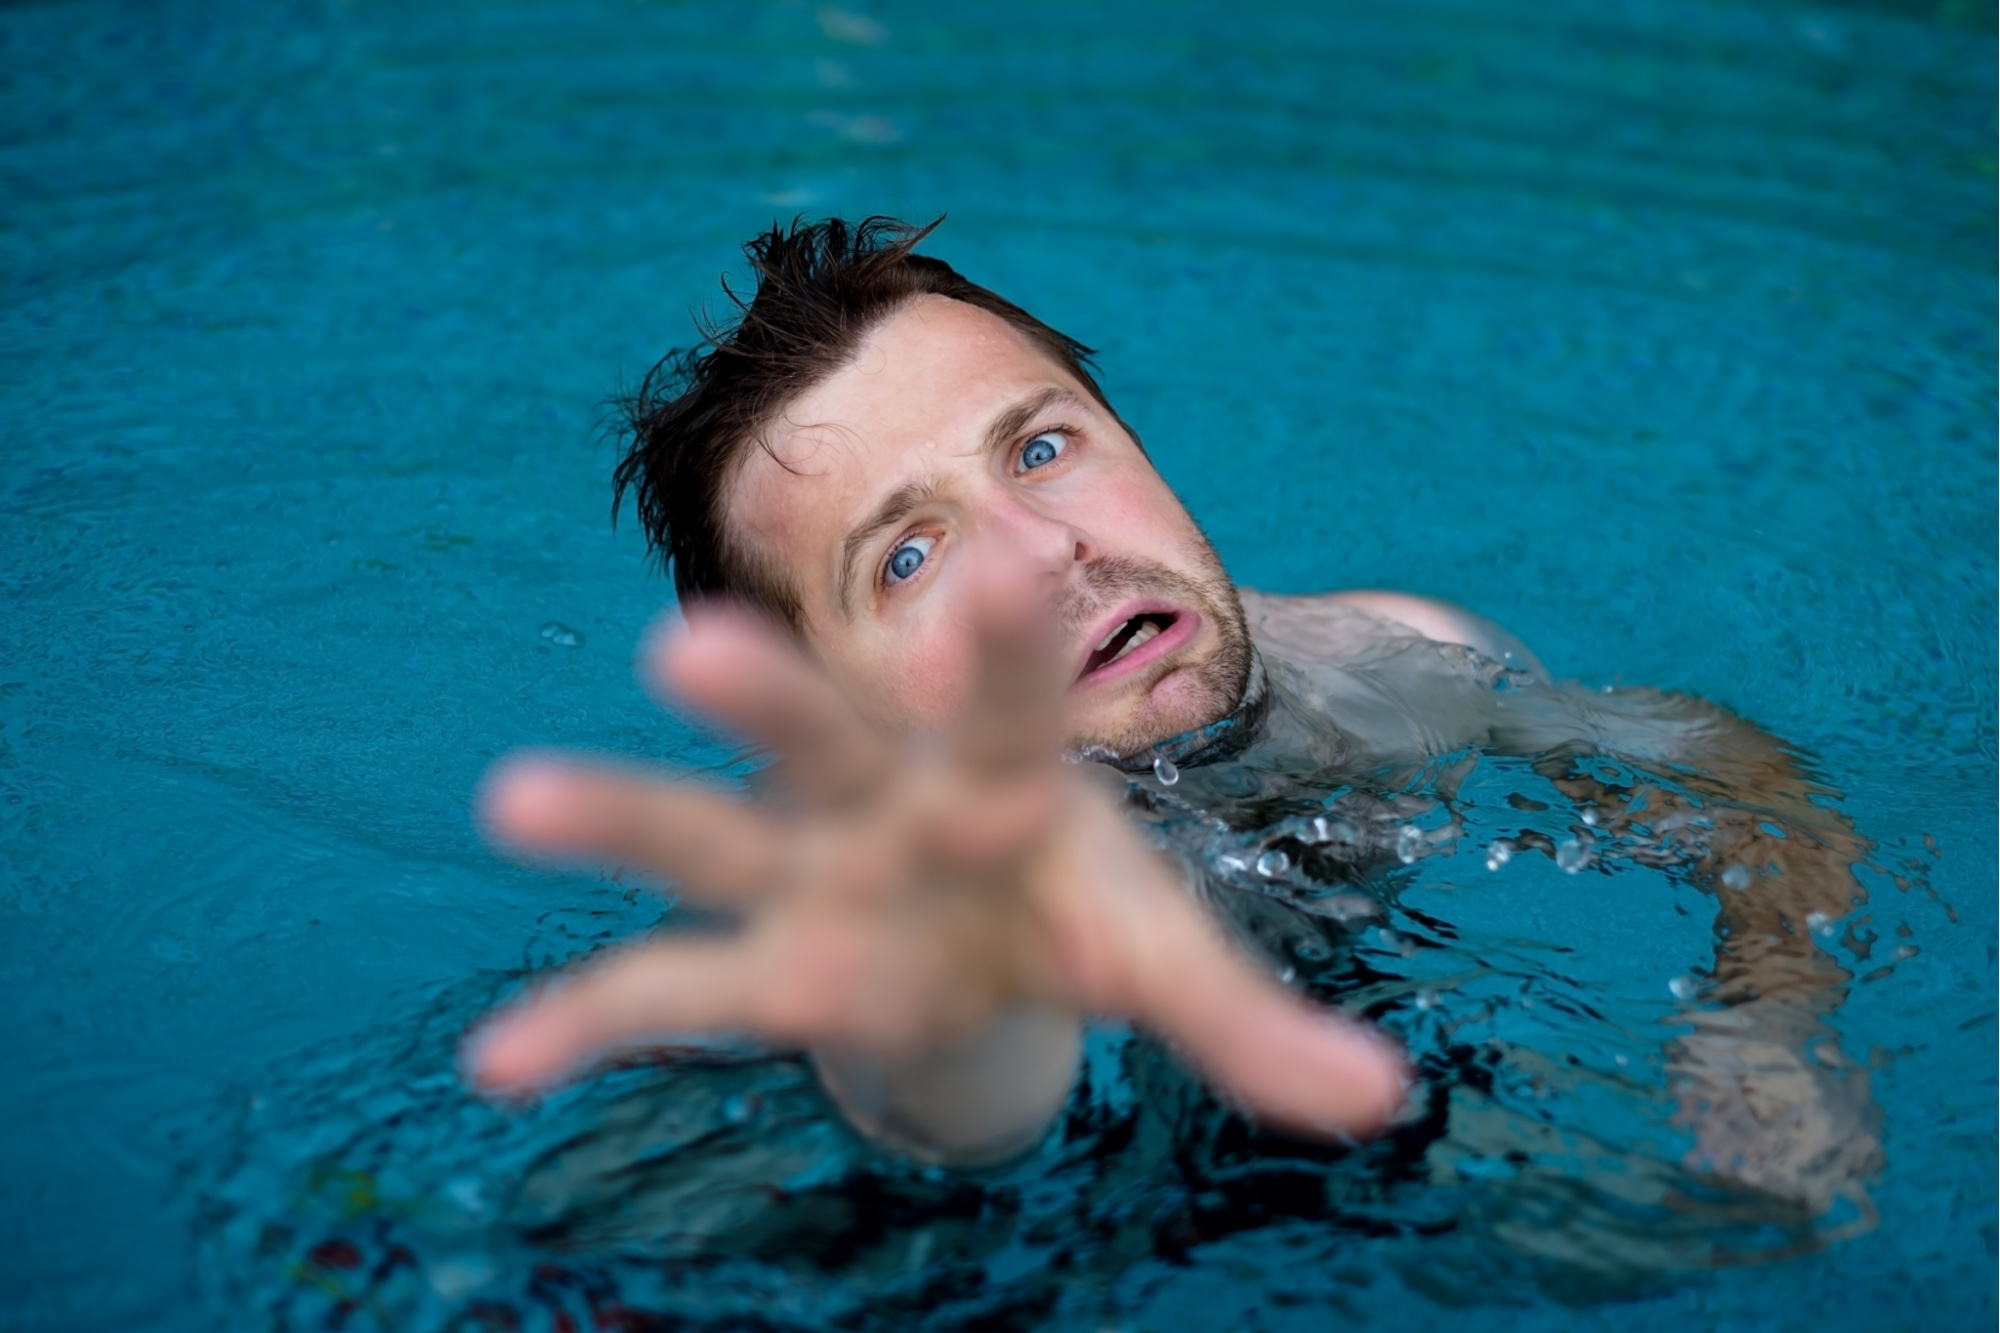 Drowning man desperately reaching for help.